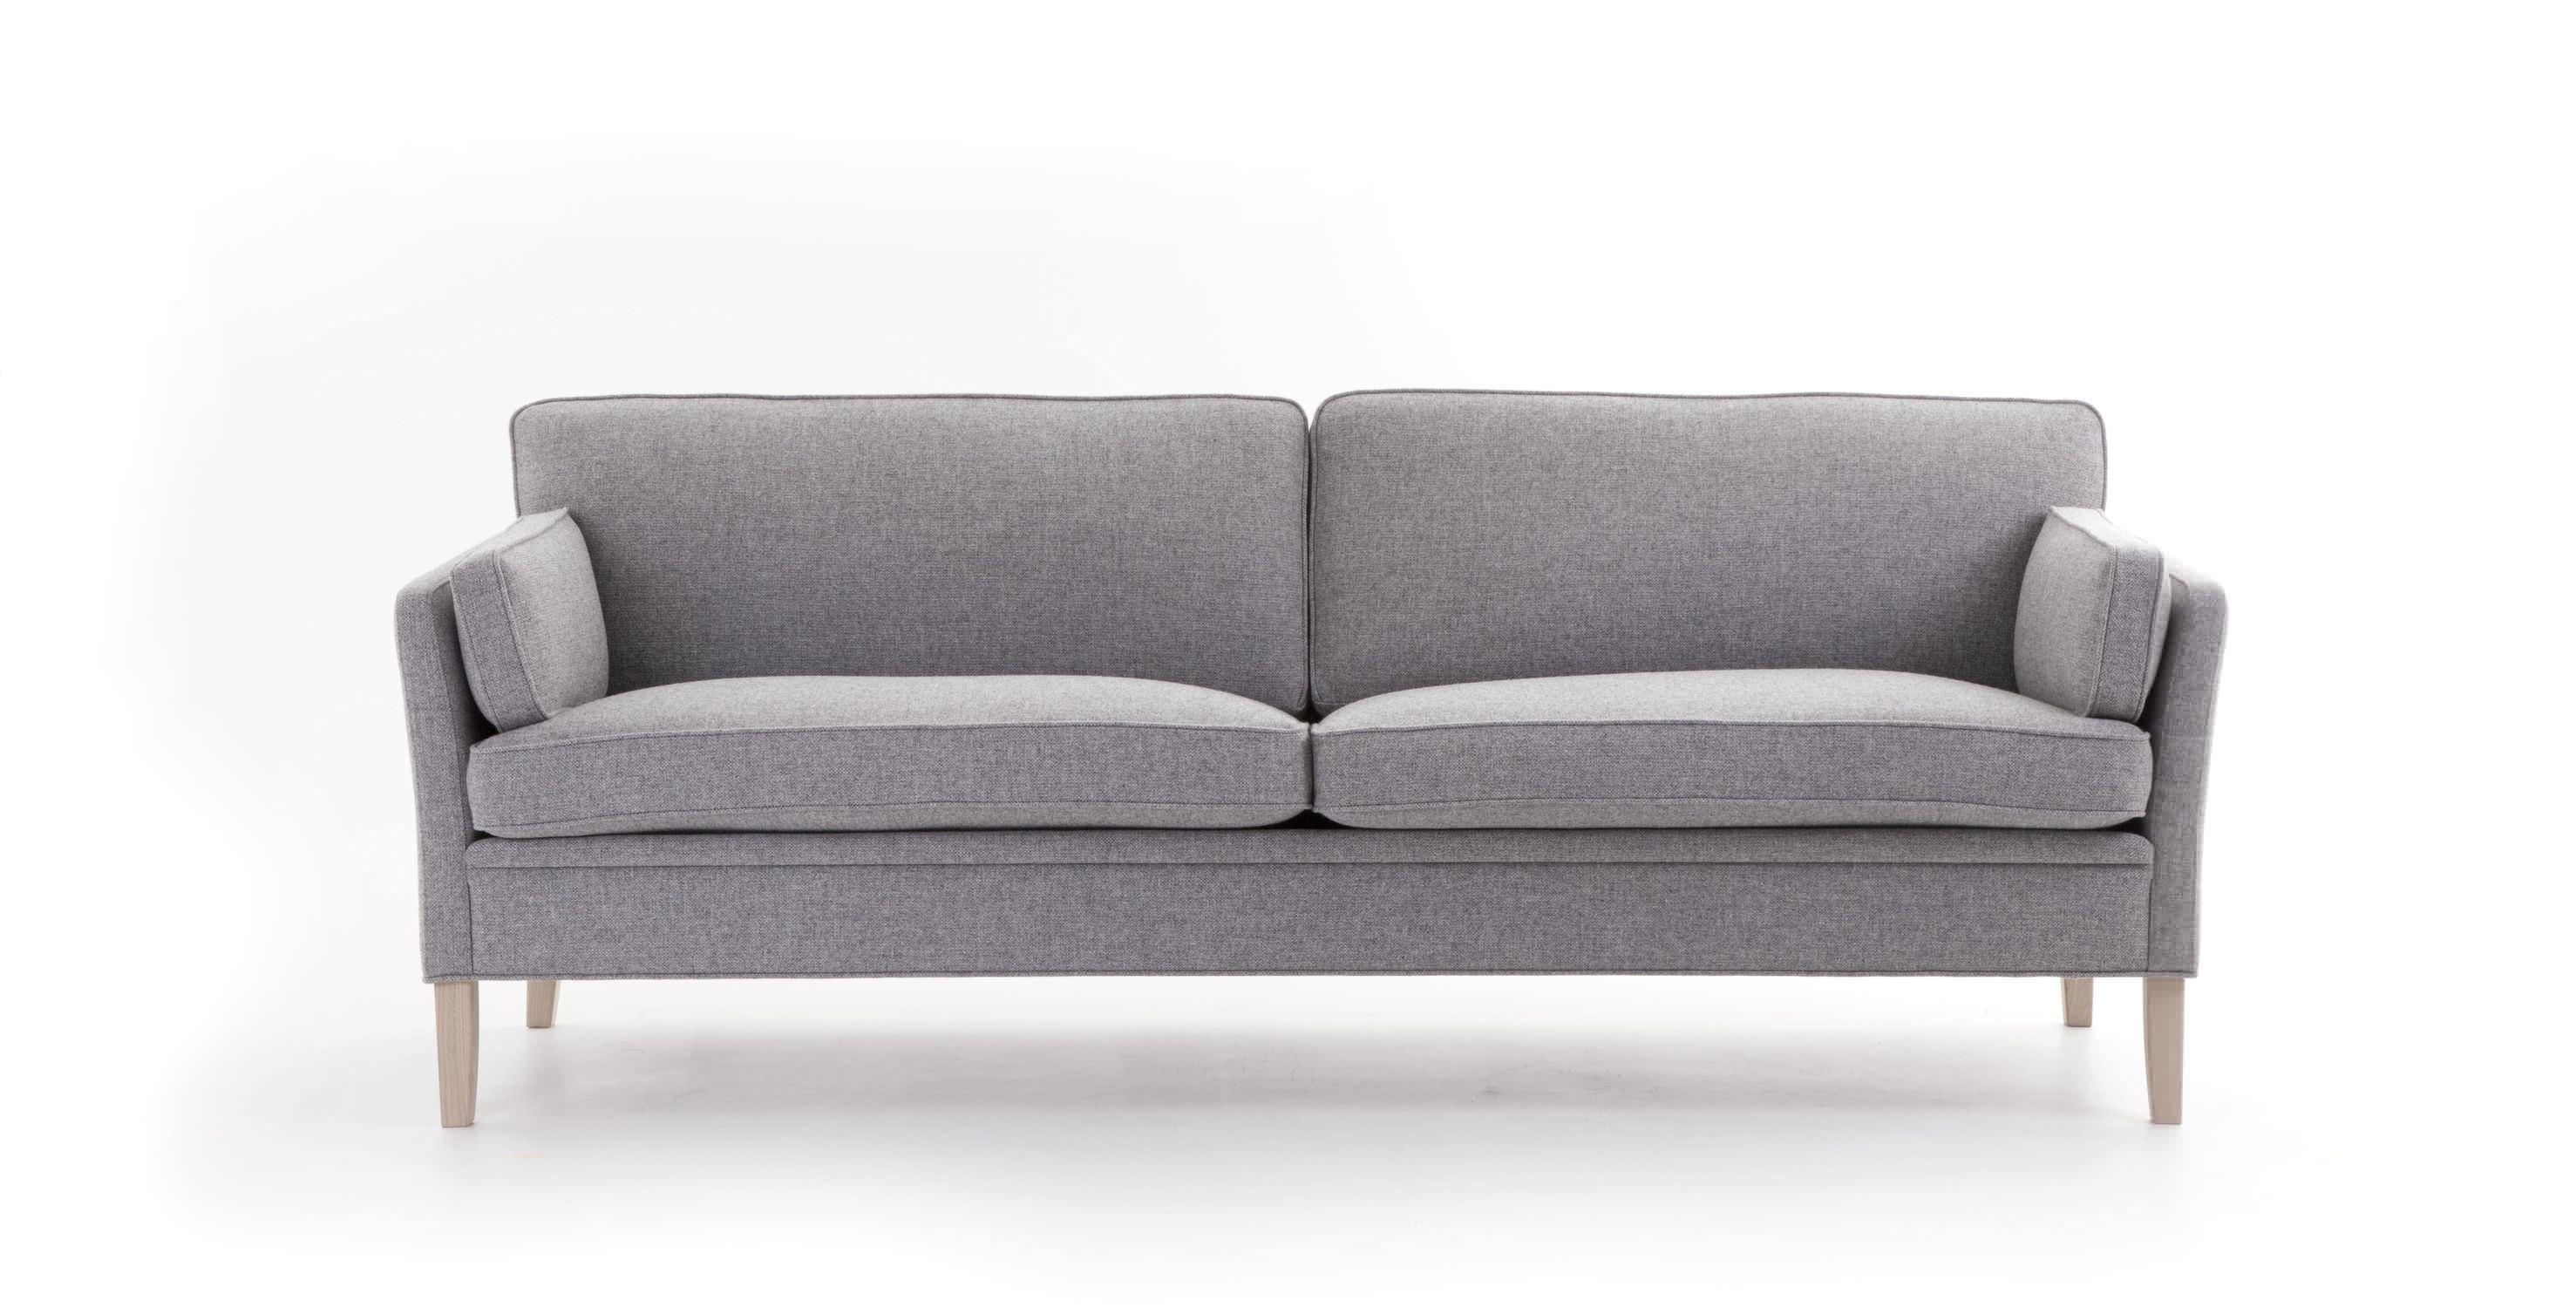 Traditional Sofa / Fabric / 2 Seater / With Removable Cover Intended For Sofas With Removable Covers (View 5 of 20)